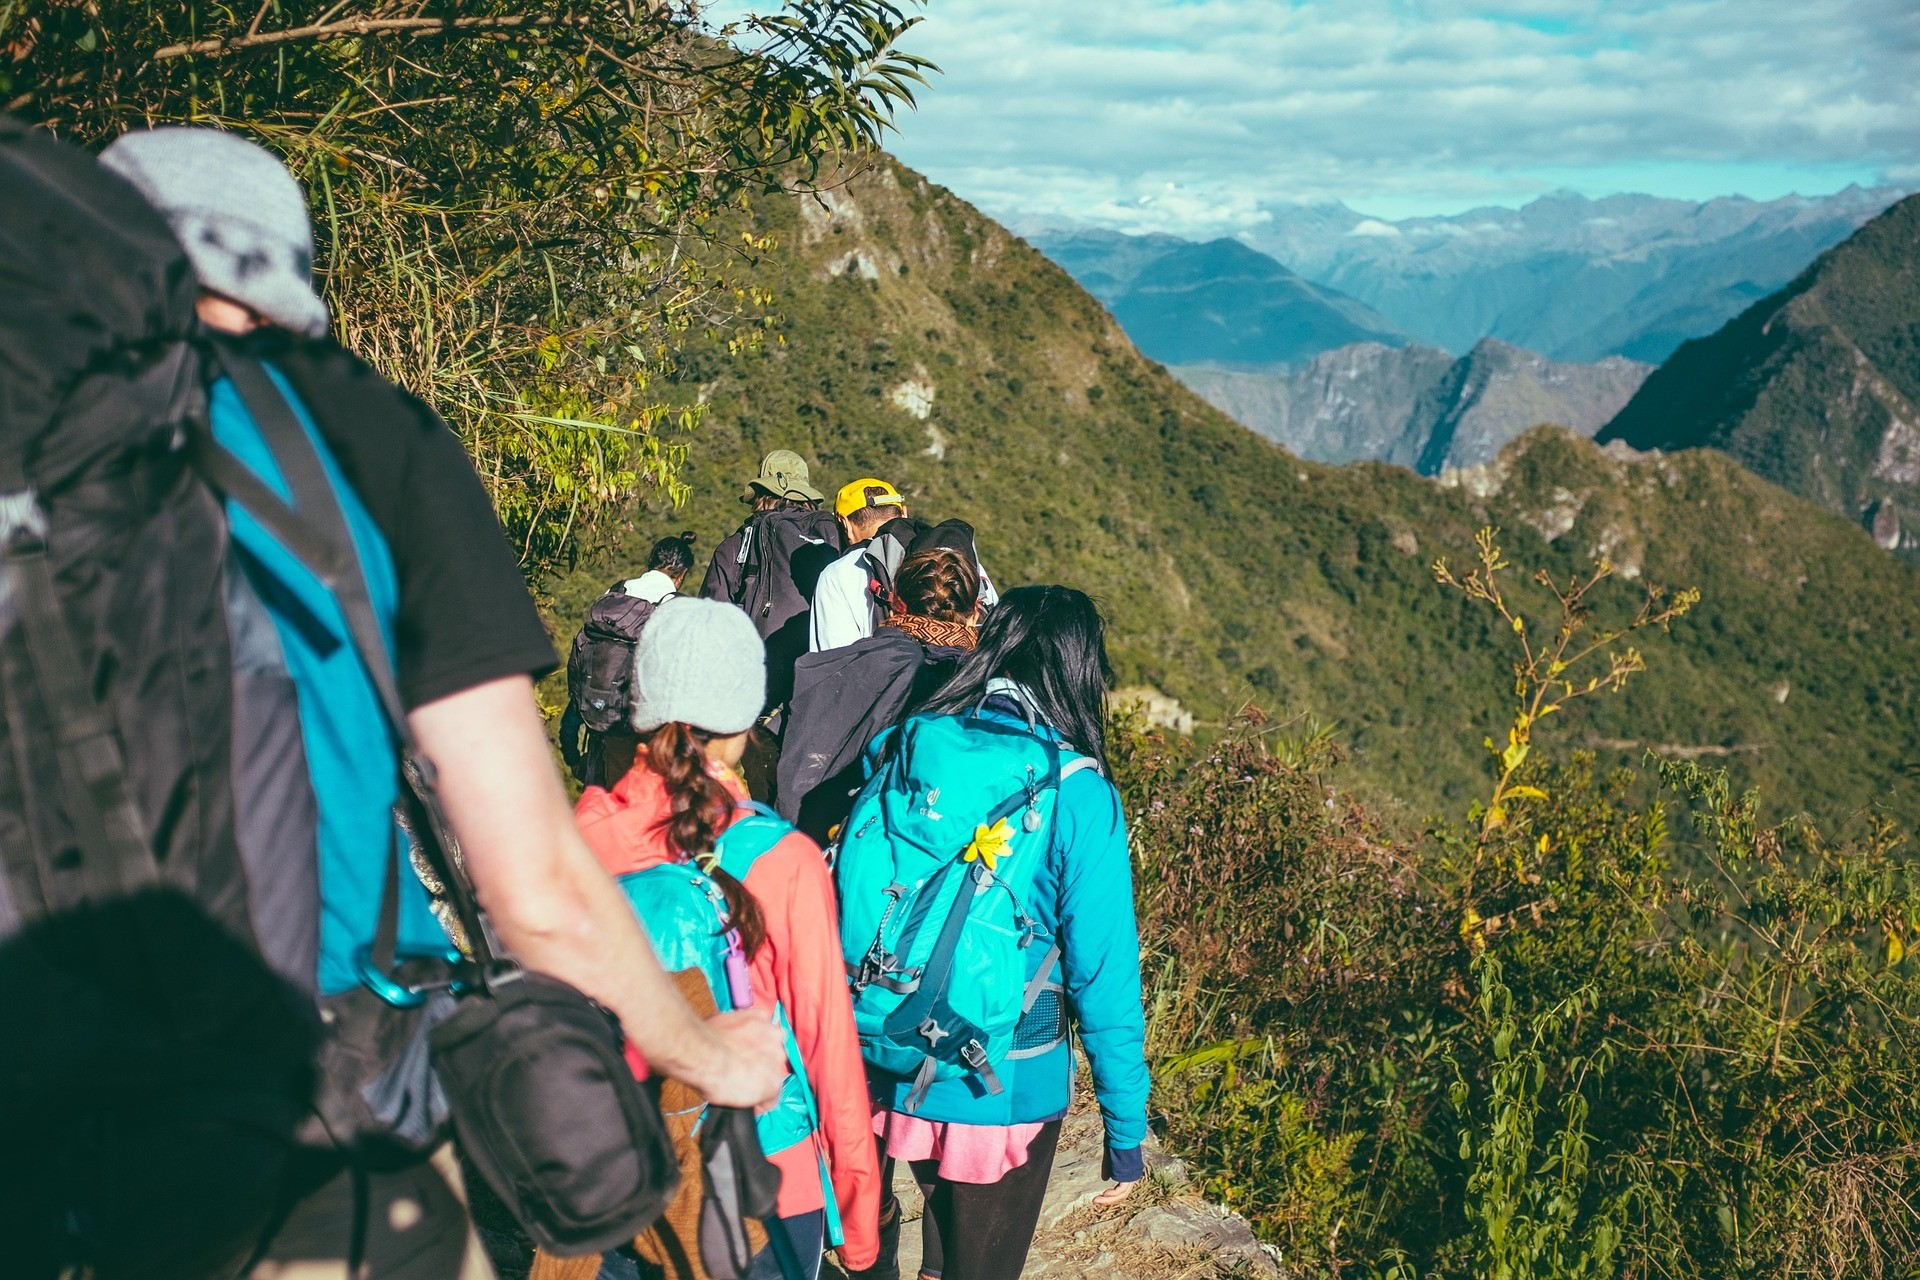 How To Make The Most Of Your Travel Adventures